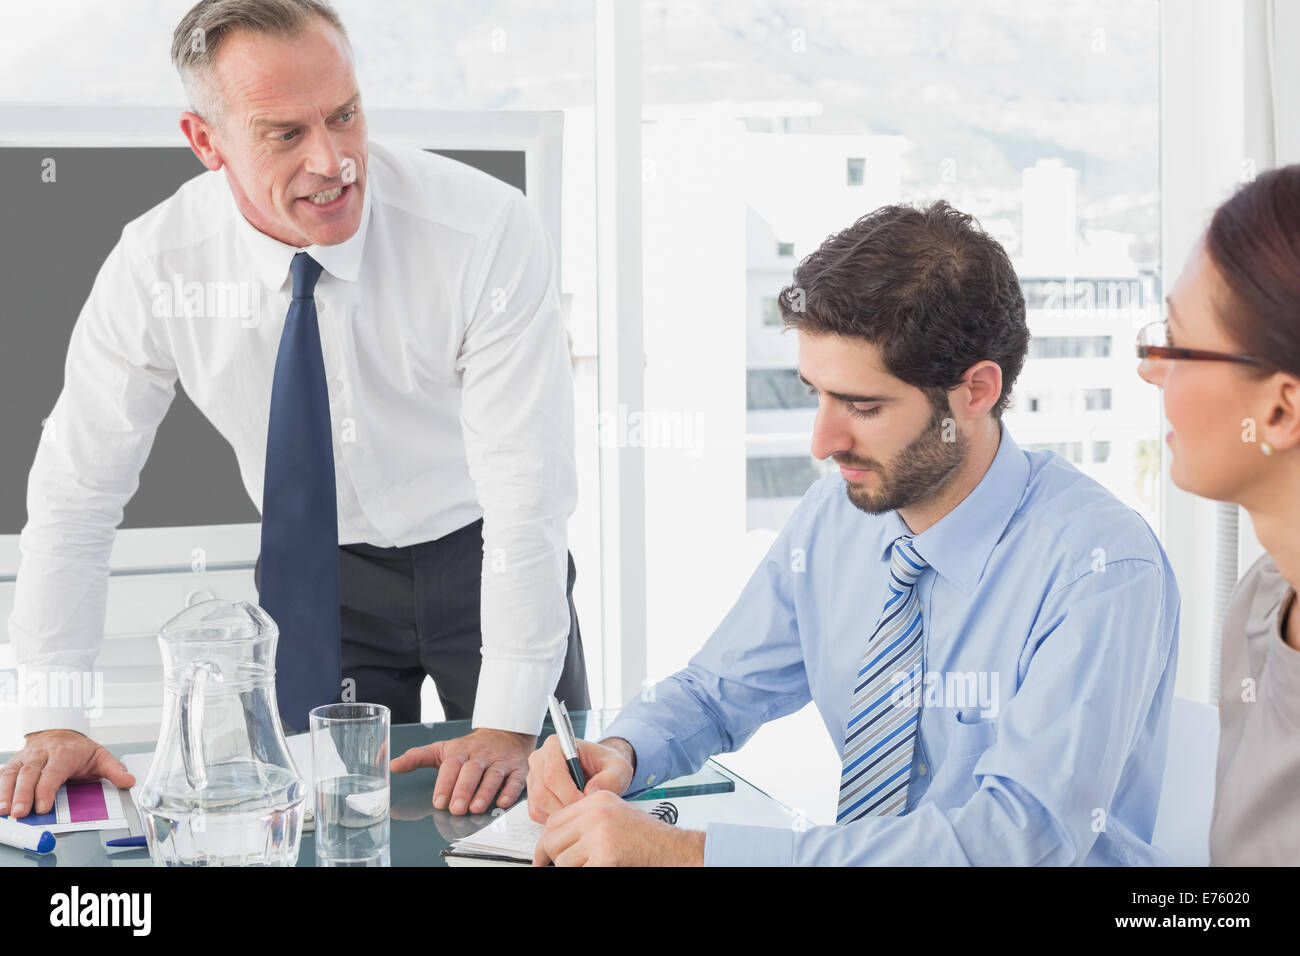 Businessman talking about serious issues - Stock Image